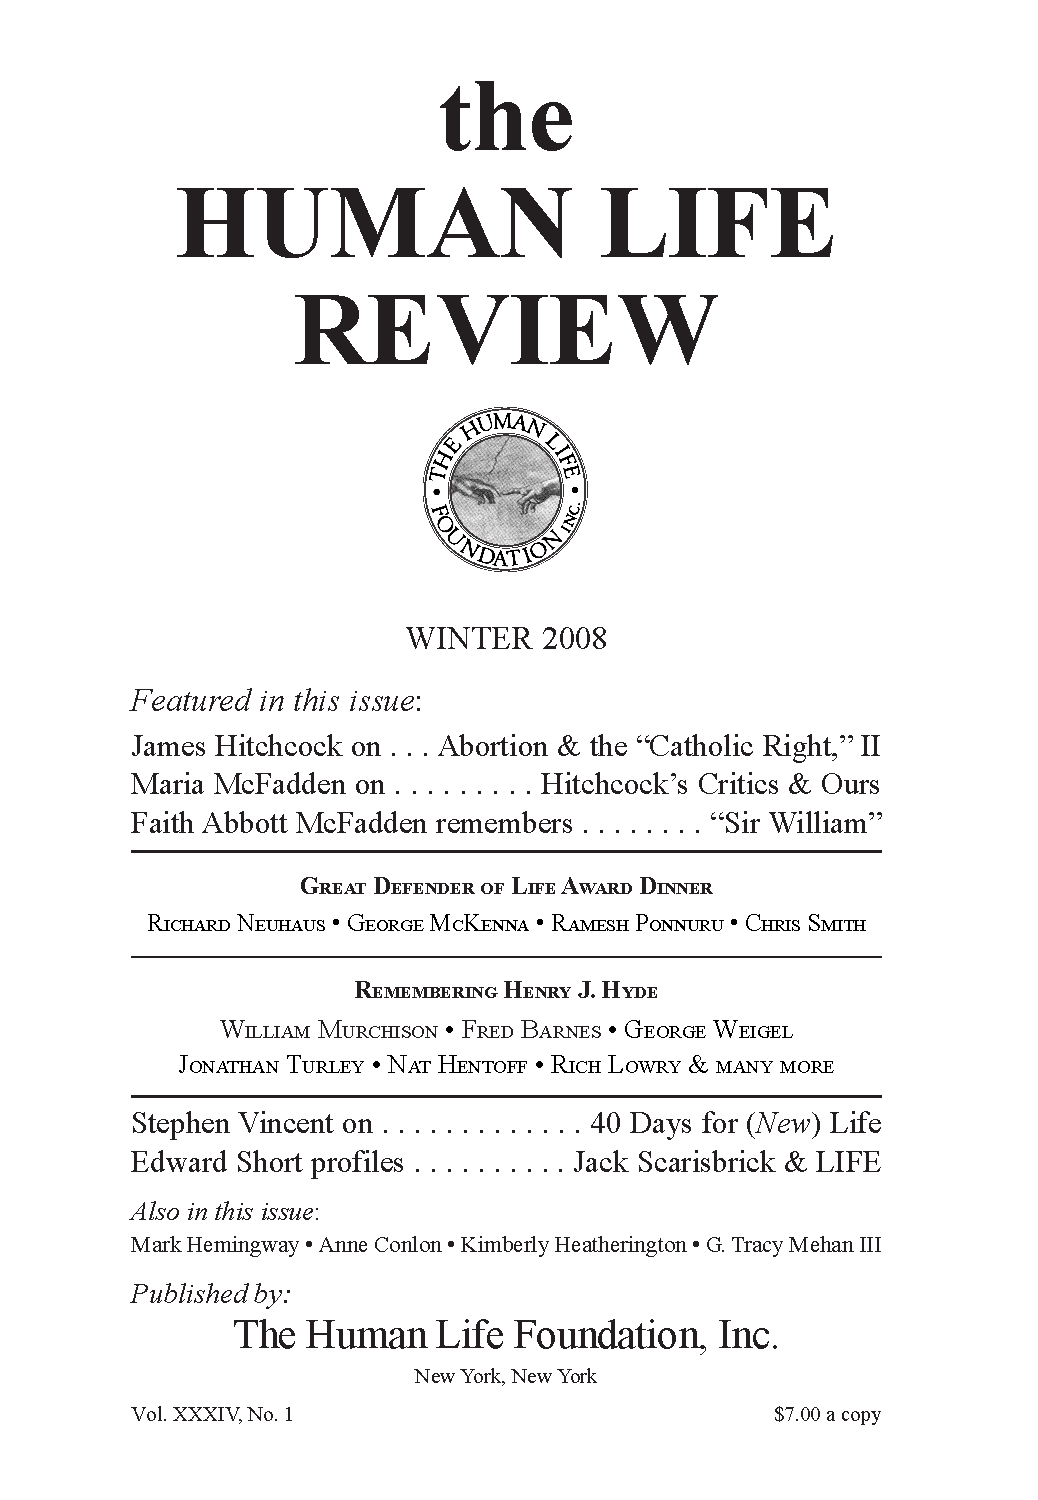 417e9823328ef The Human Life Review Winter 2008 - The Human Life Review